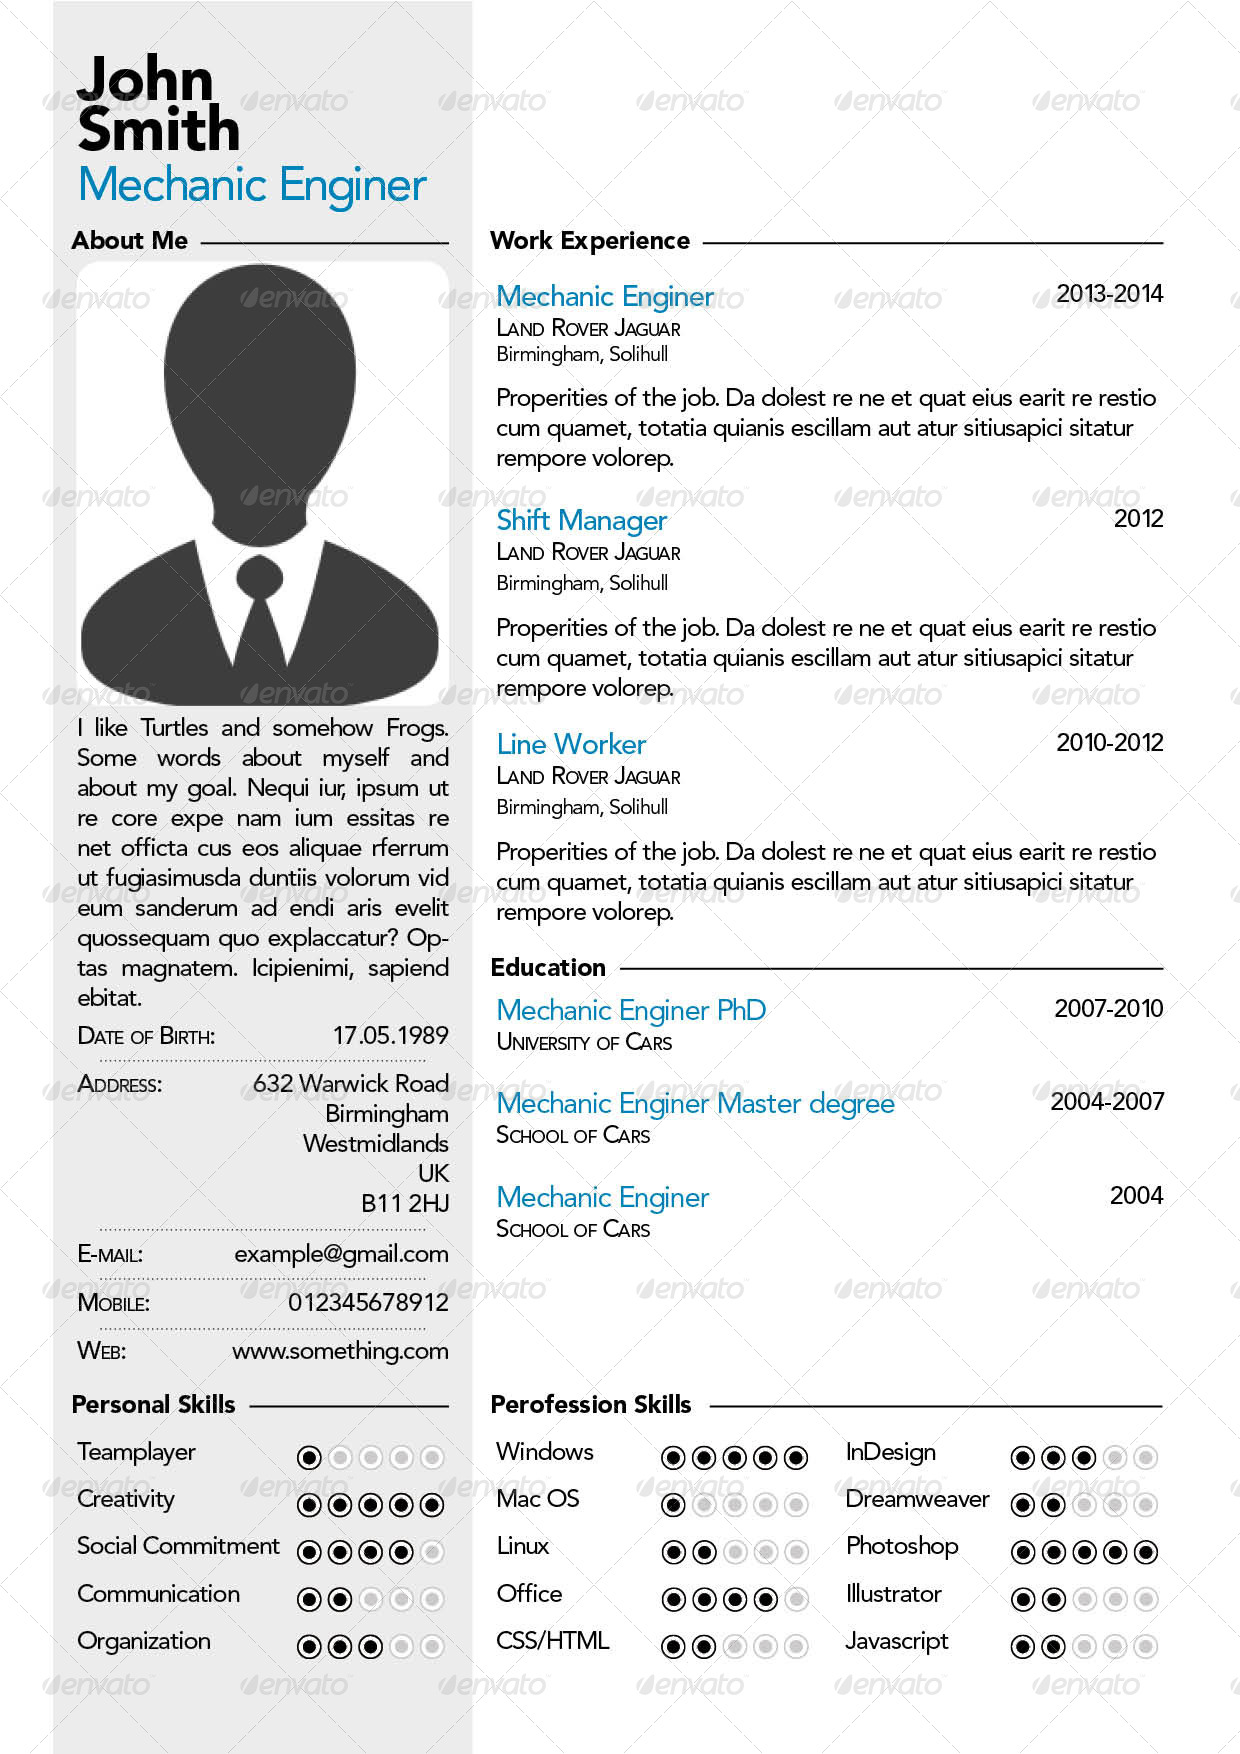 simple professional resume cv by szeszil graphicriver